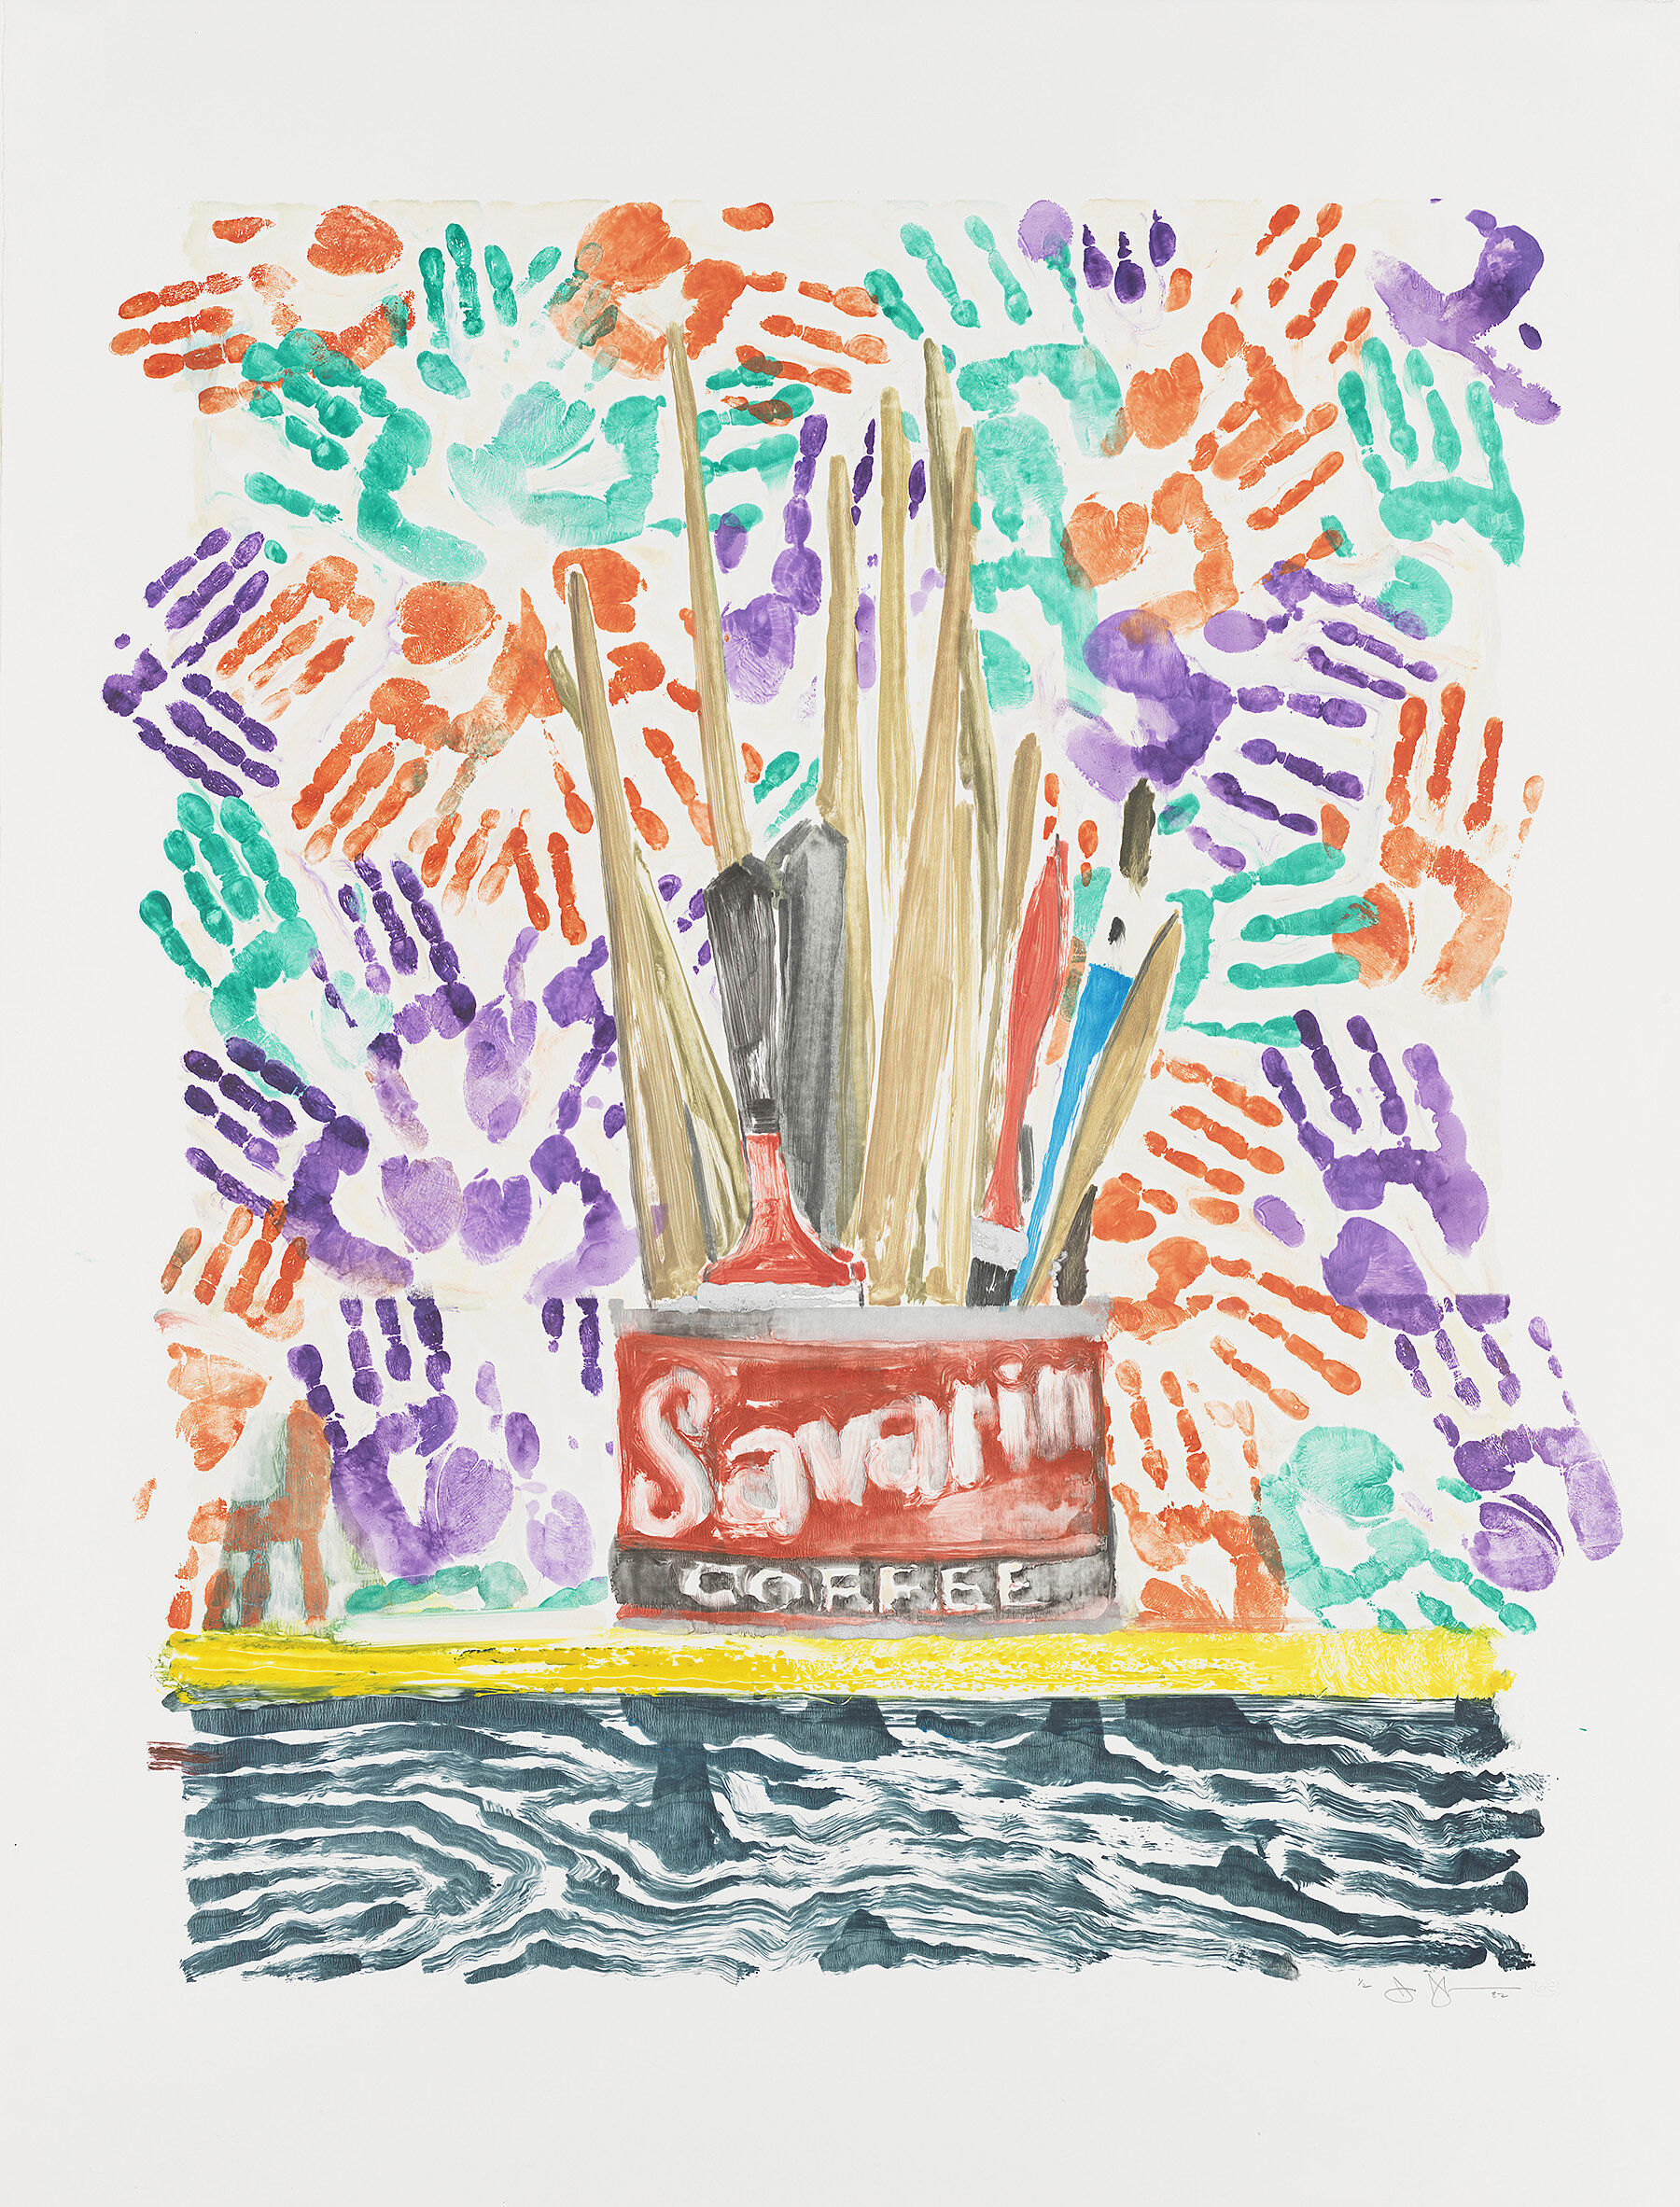 a lithograph of a Savarin coffee can filled with paint brushes with orange, green, and purple hand prints in the background